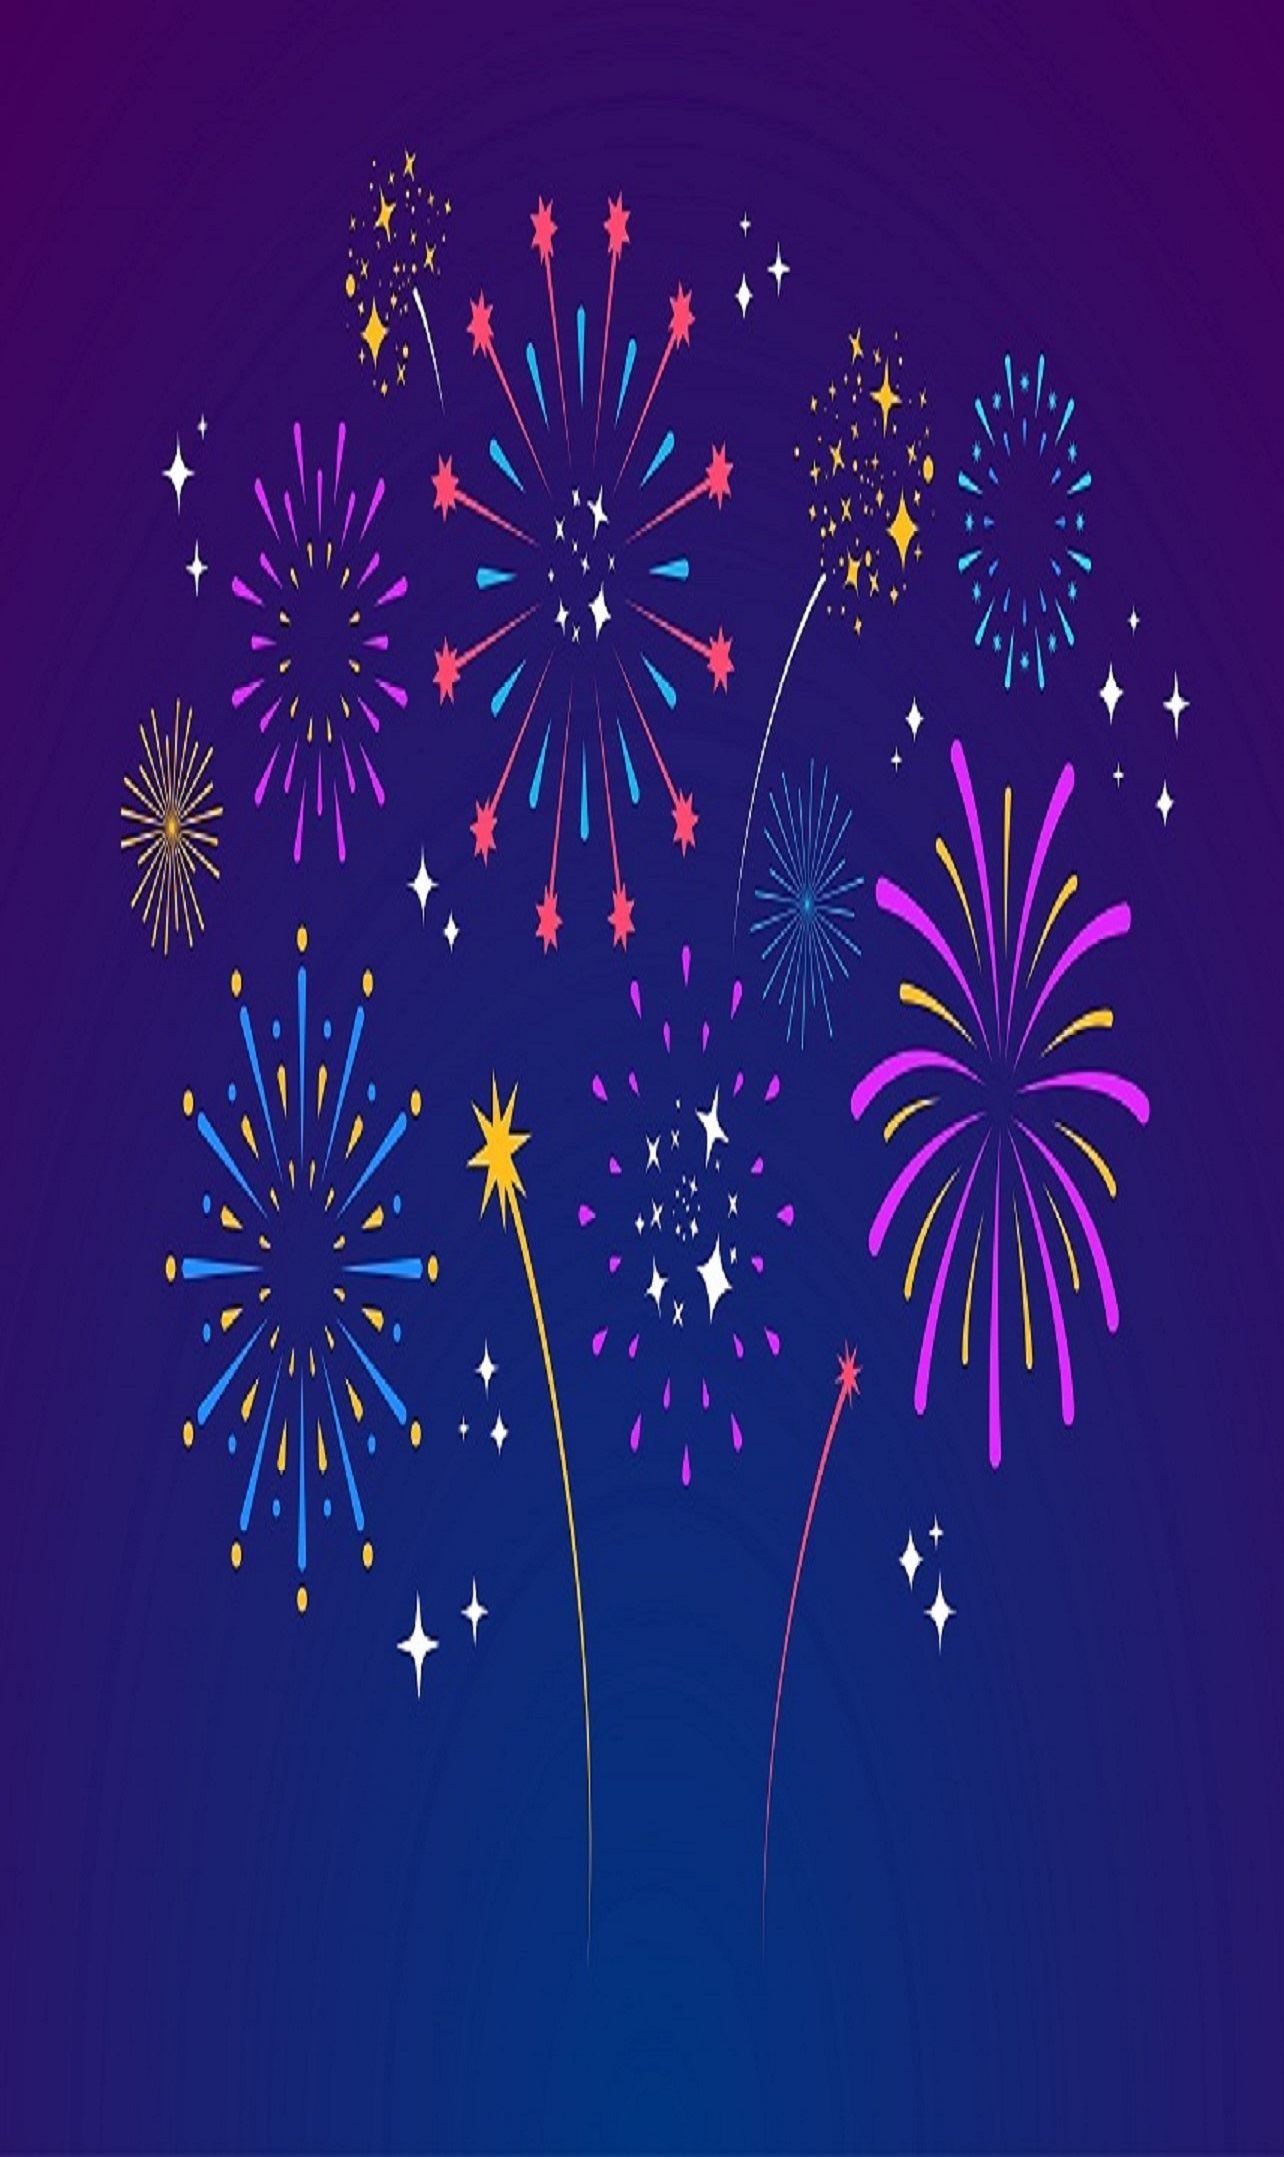 Image of cartoon fireworks